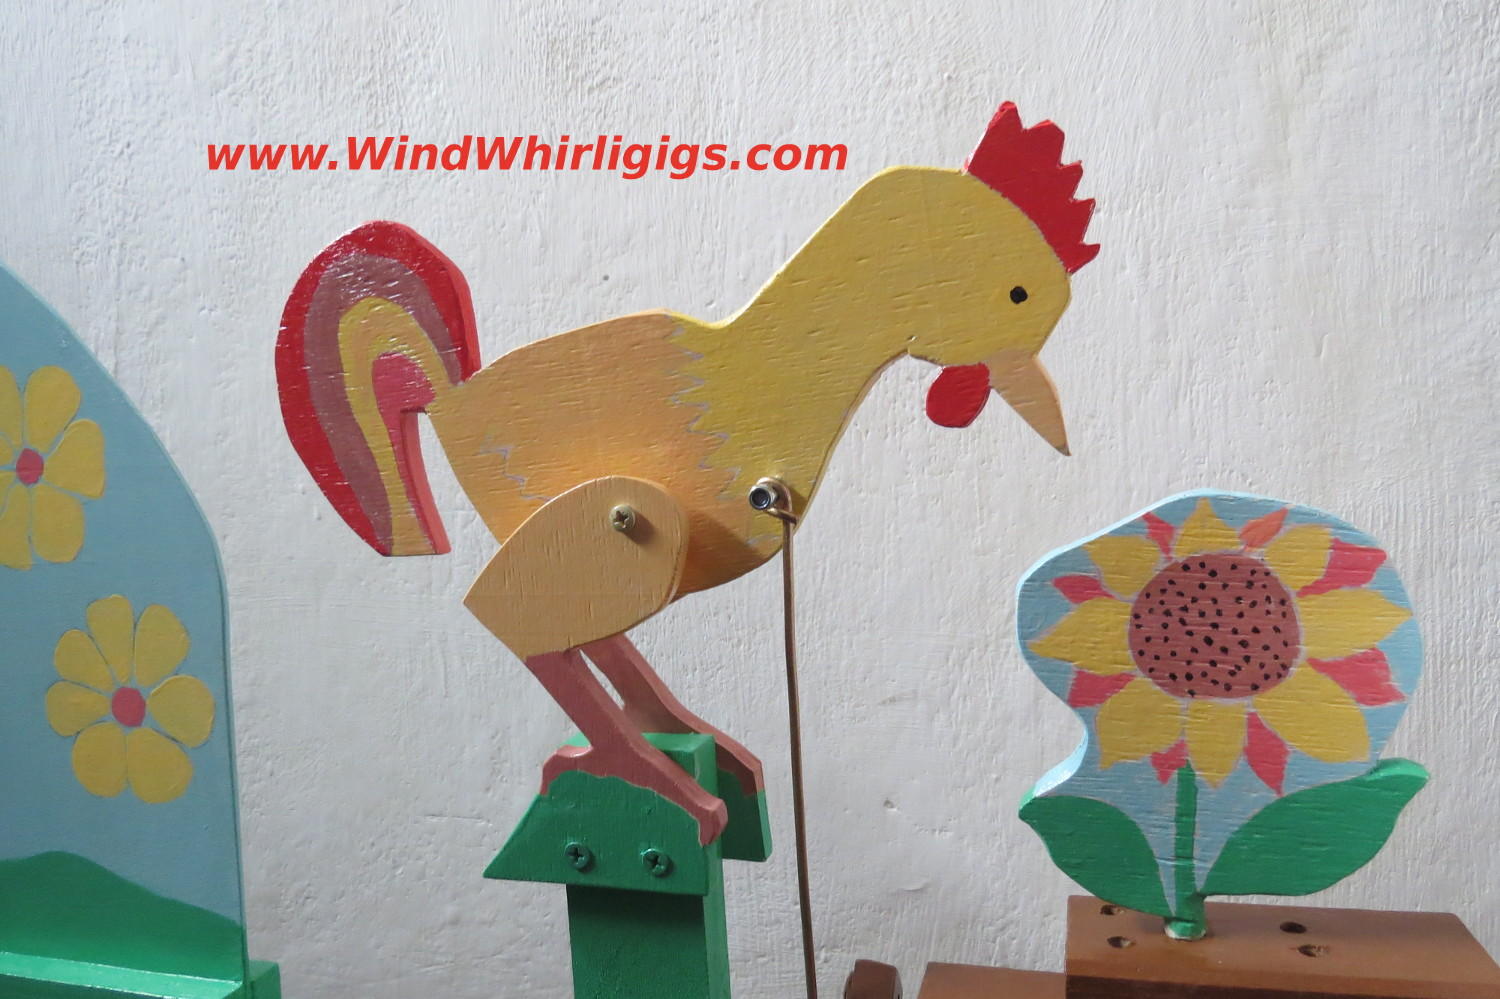 Rooster Whirligig. Cockerel pecks a sunflower. Wind-driven whirligig for sale.